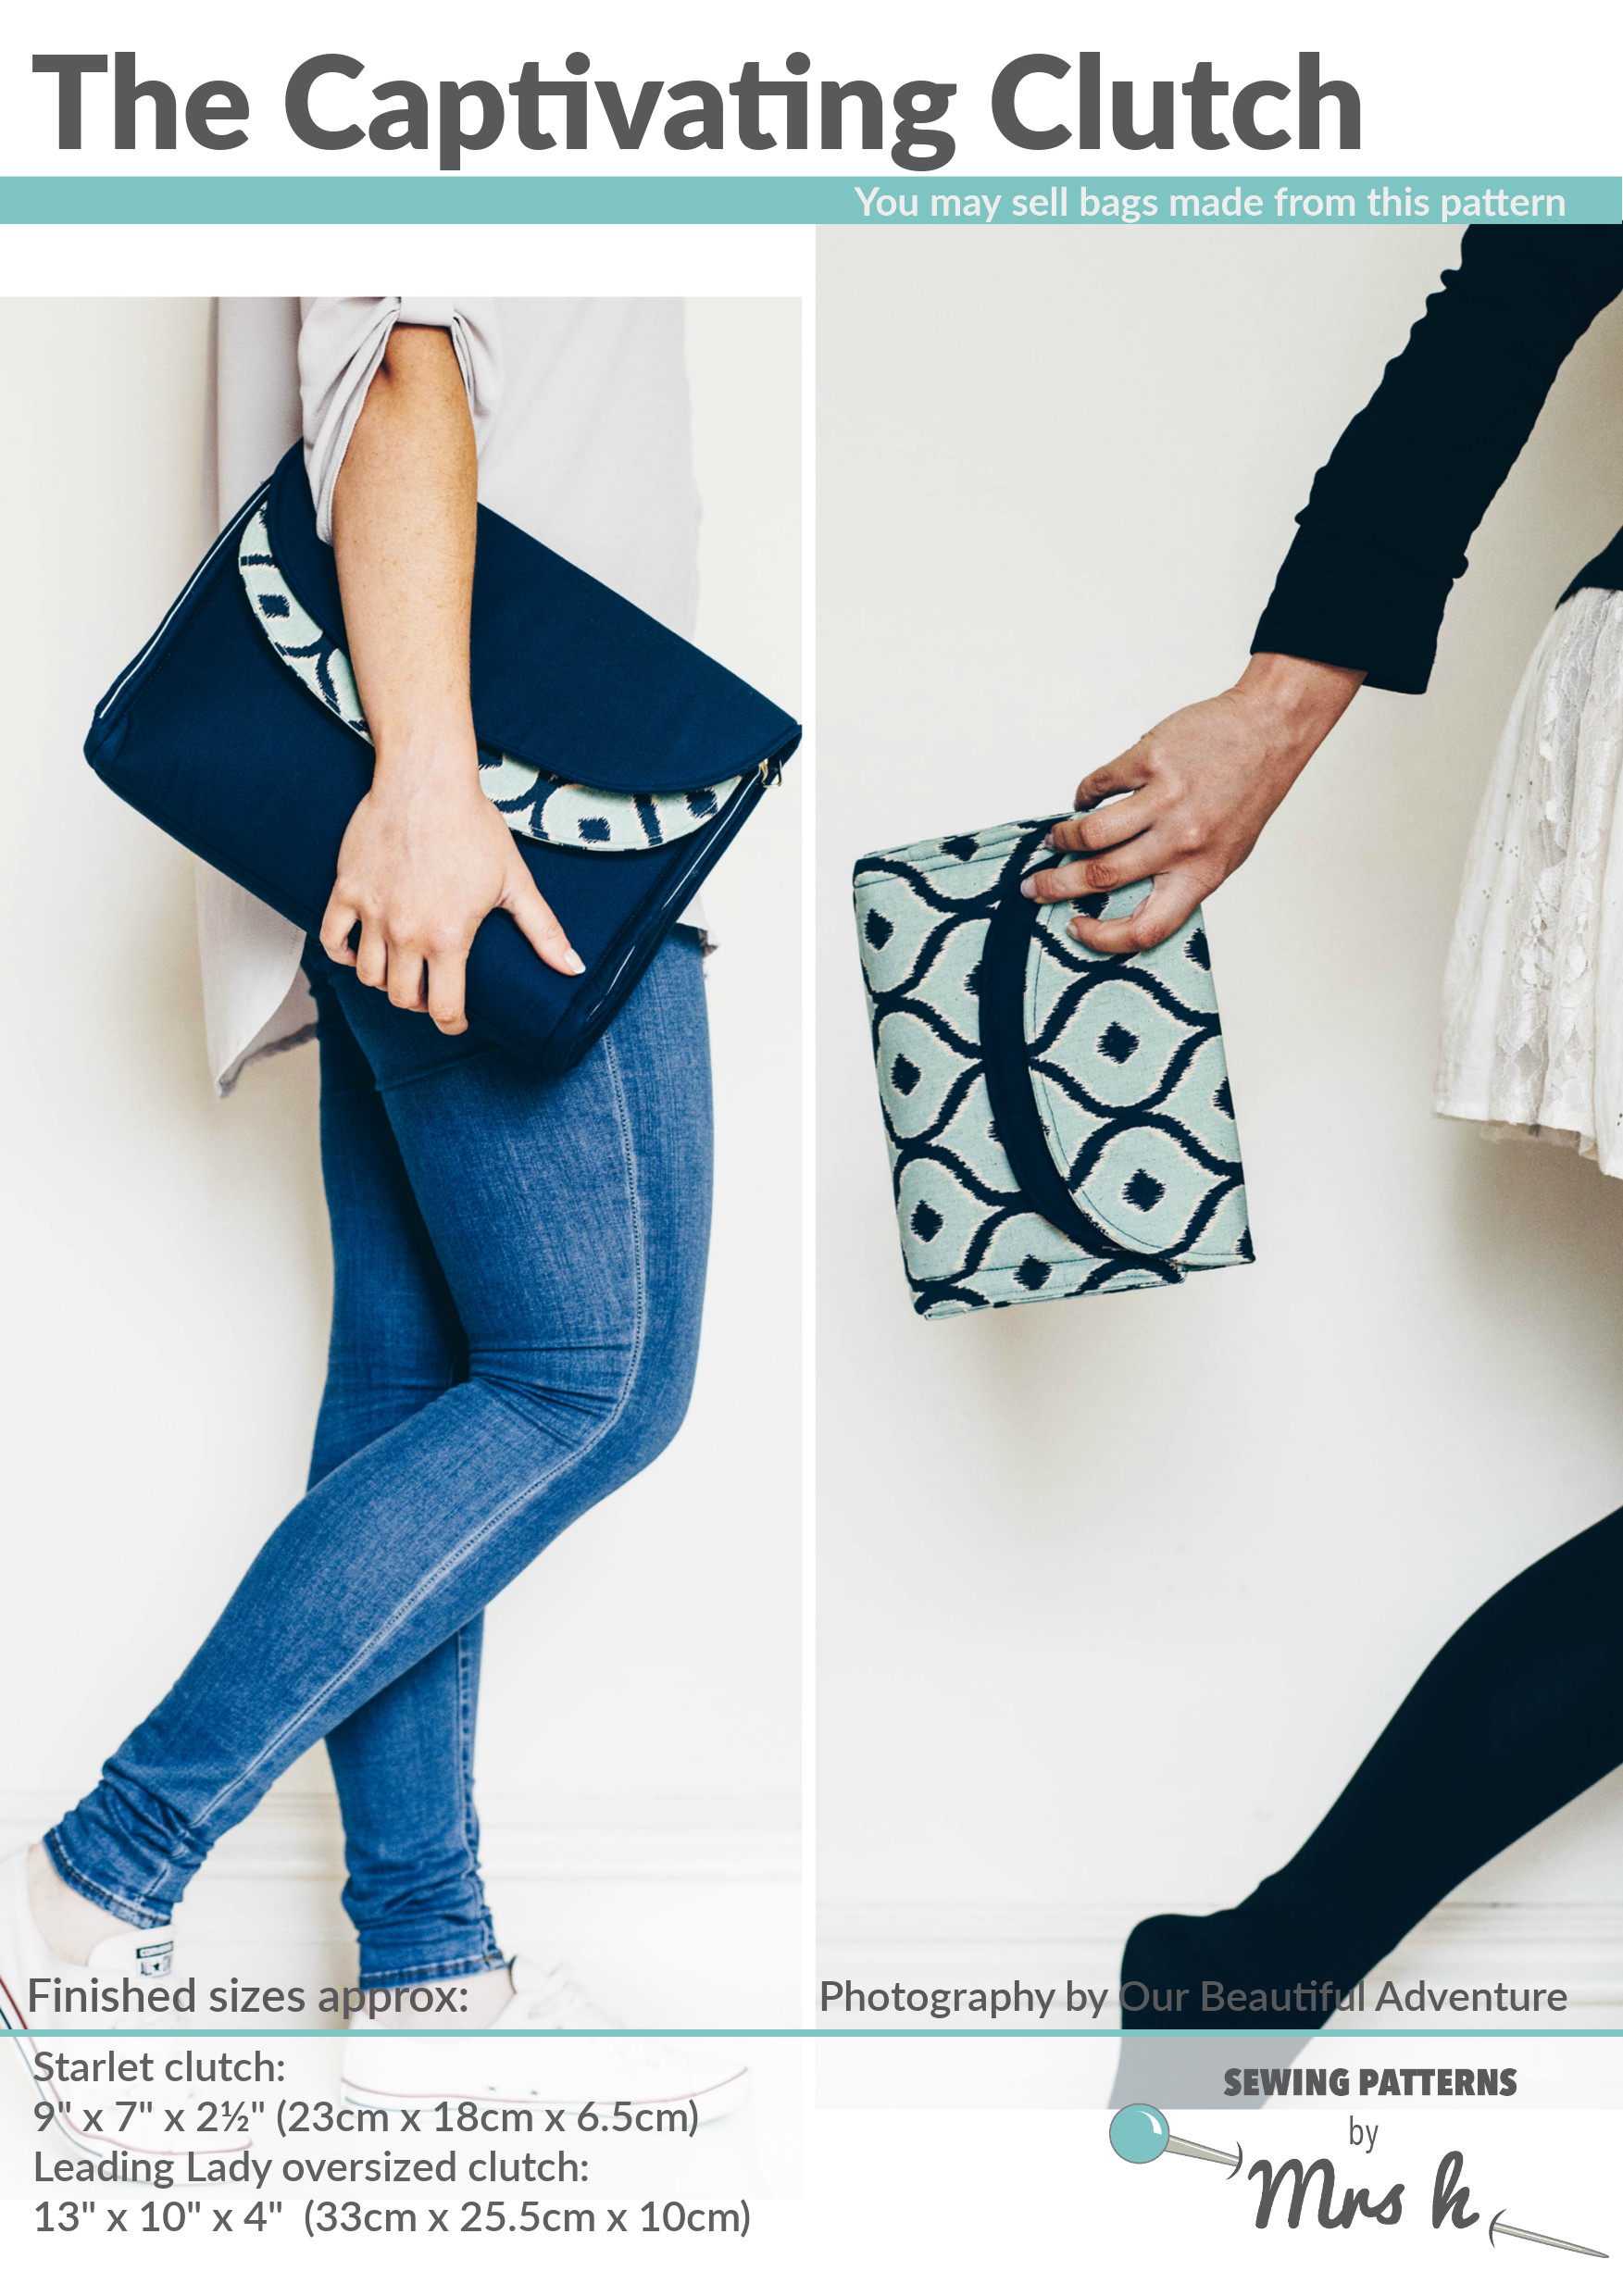 The Captivating Clutch by Sewing Patterns by Mrs H